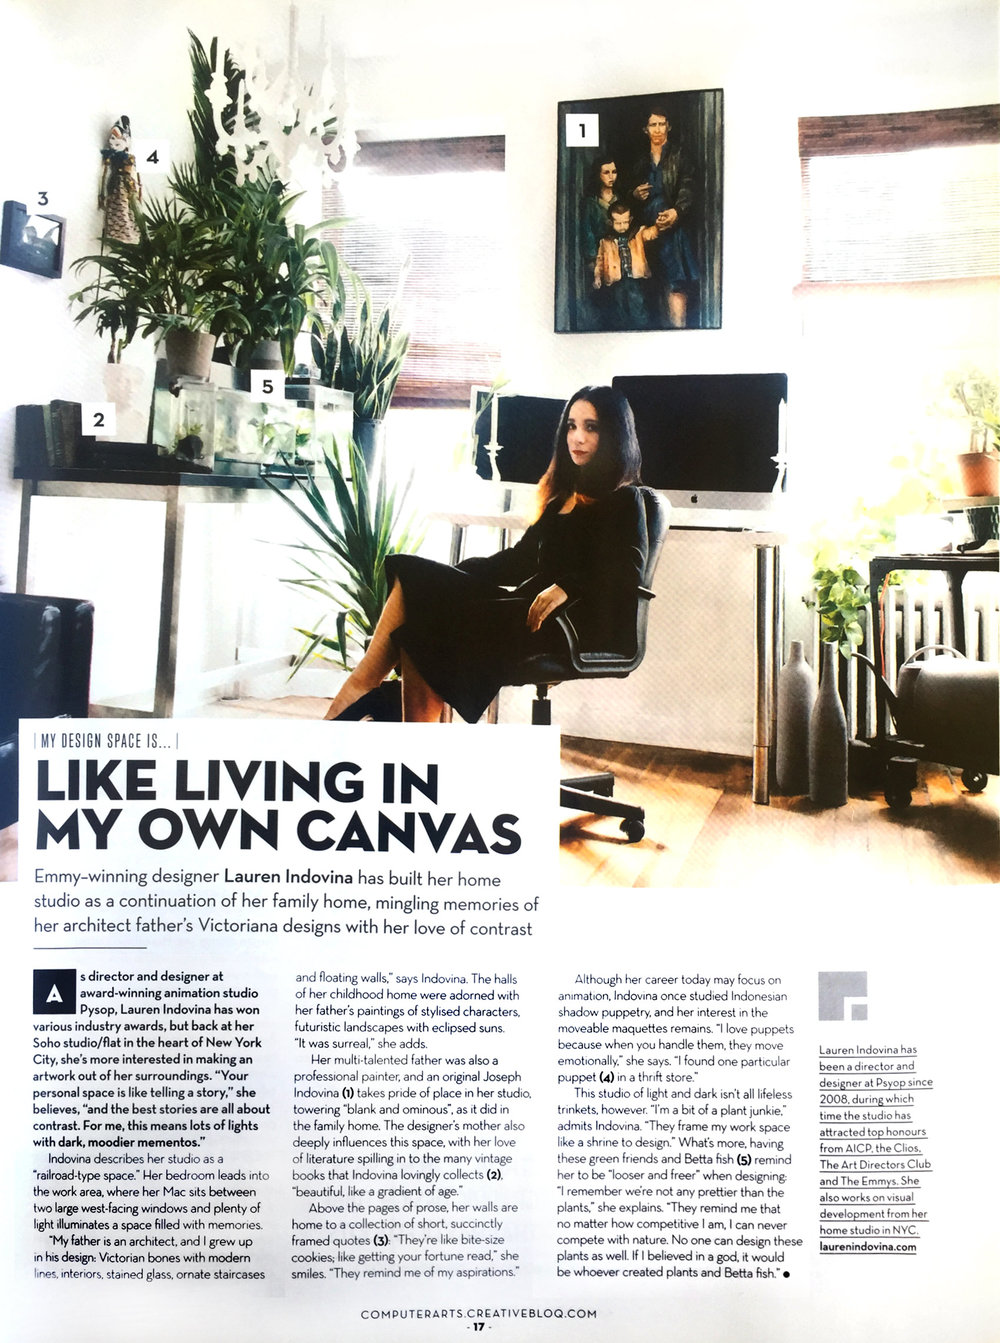 COMPUTER ARTS MAGAZINE /  LIKE LIVING IN MY OWN CANVAS